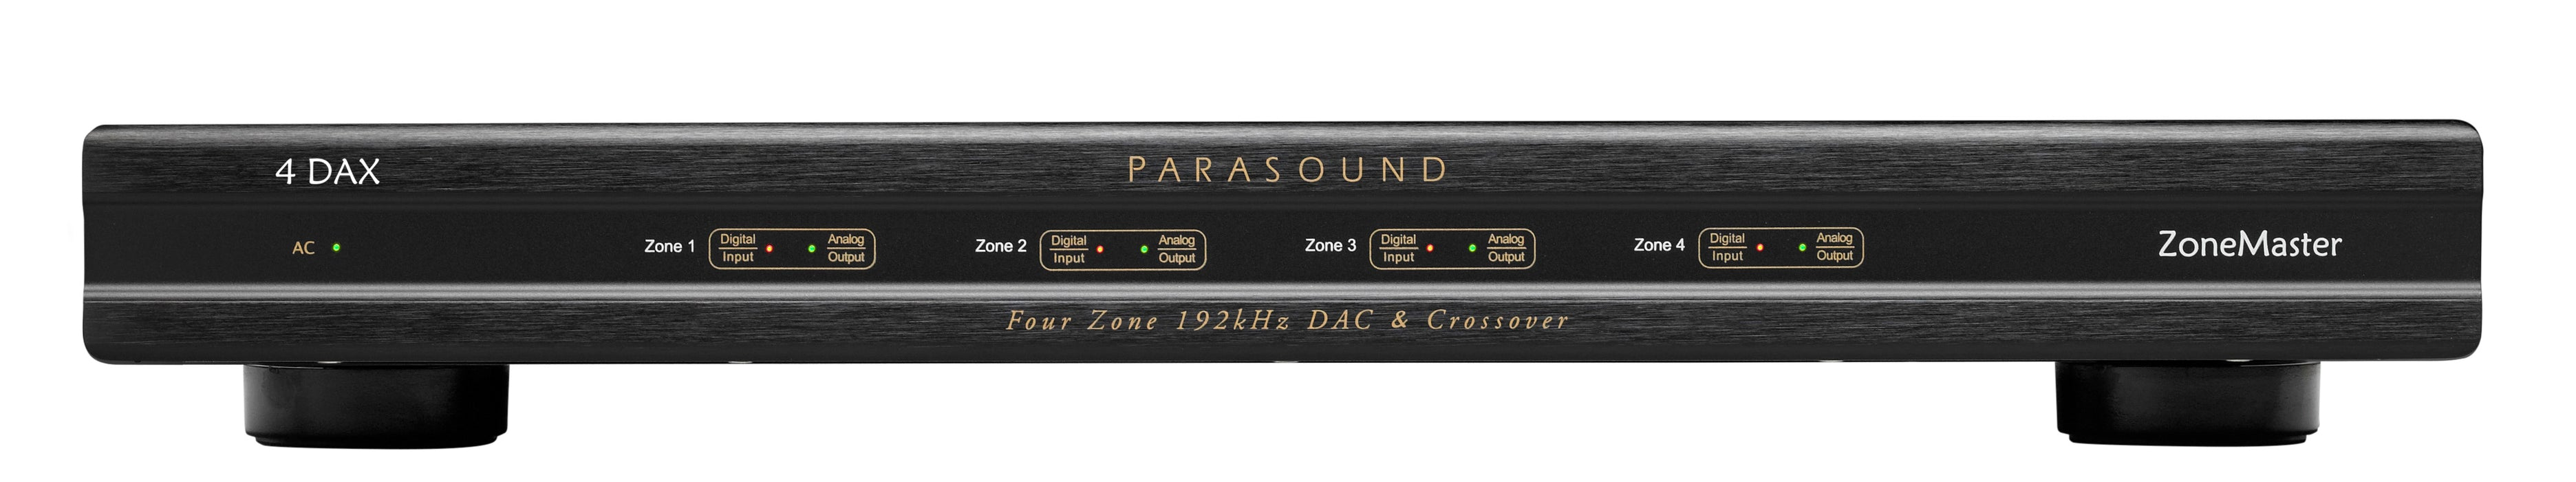 Parasound ZoneMaster 4 DAX  Four Zone 192kHz 24bit DAC and Crossover - Safe and Sound HQ